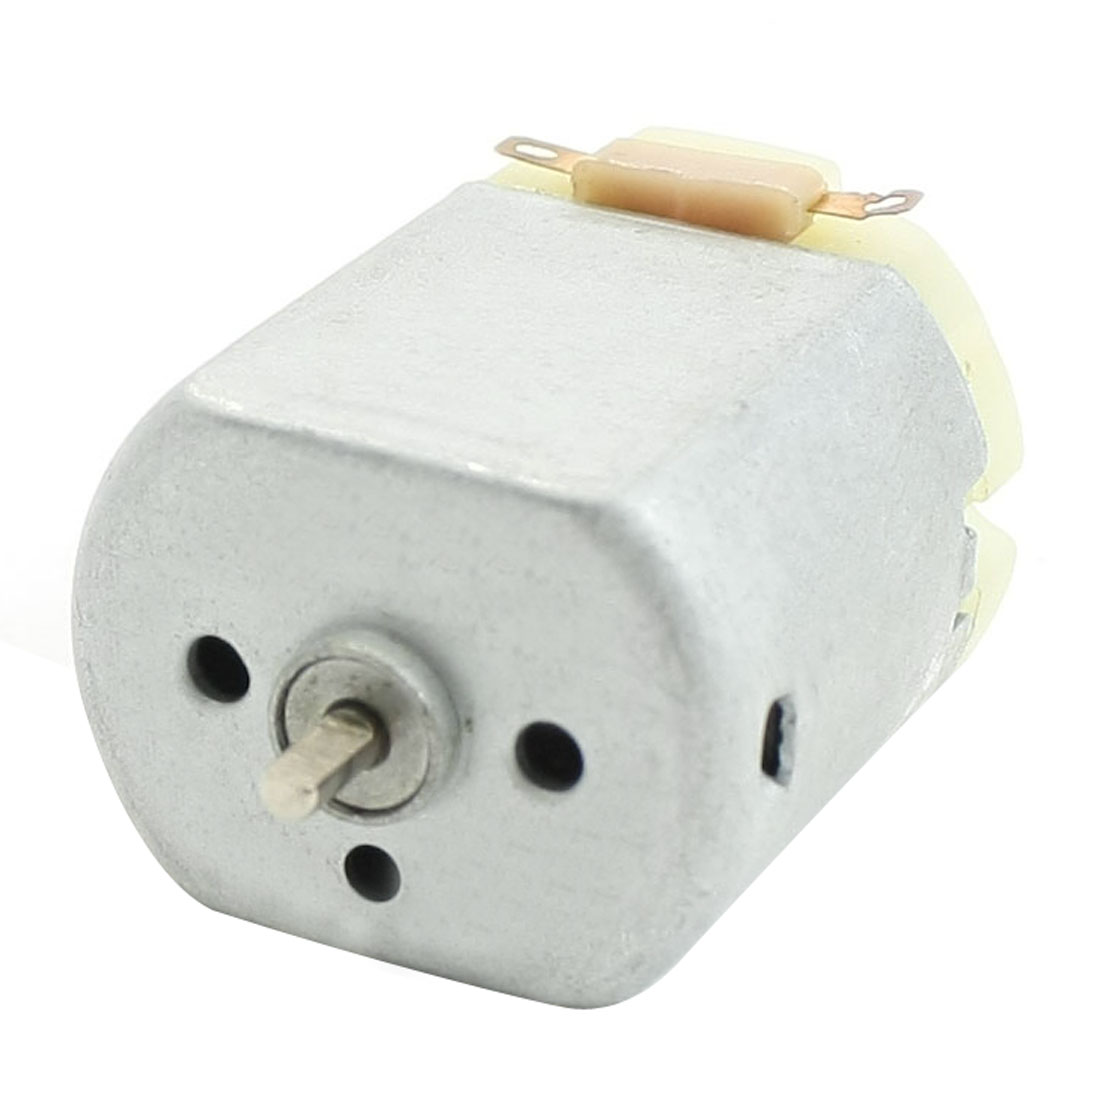 DC 3-12V Variable Speed Magnetic Cylindrical DC Motor for DIY Toy